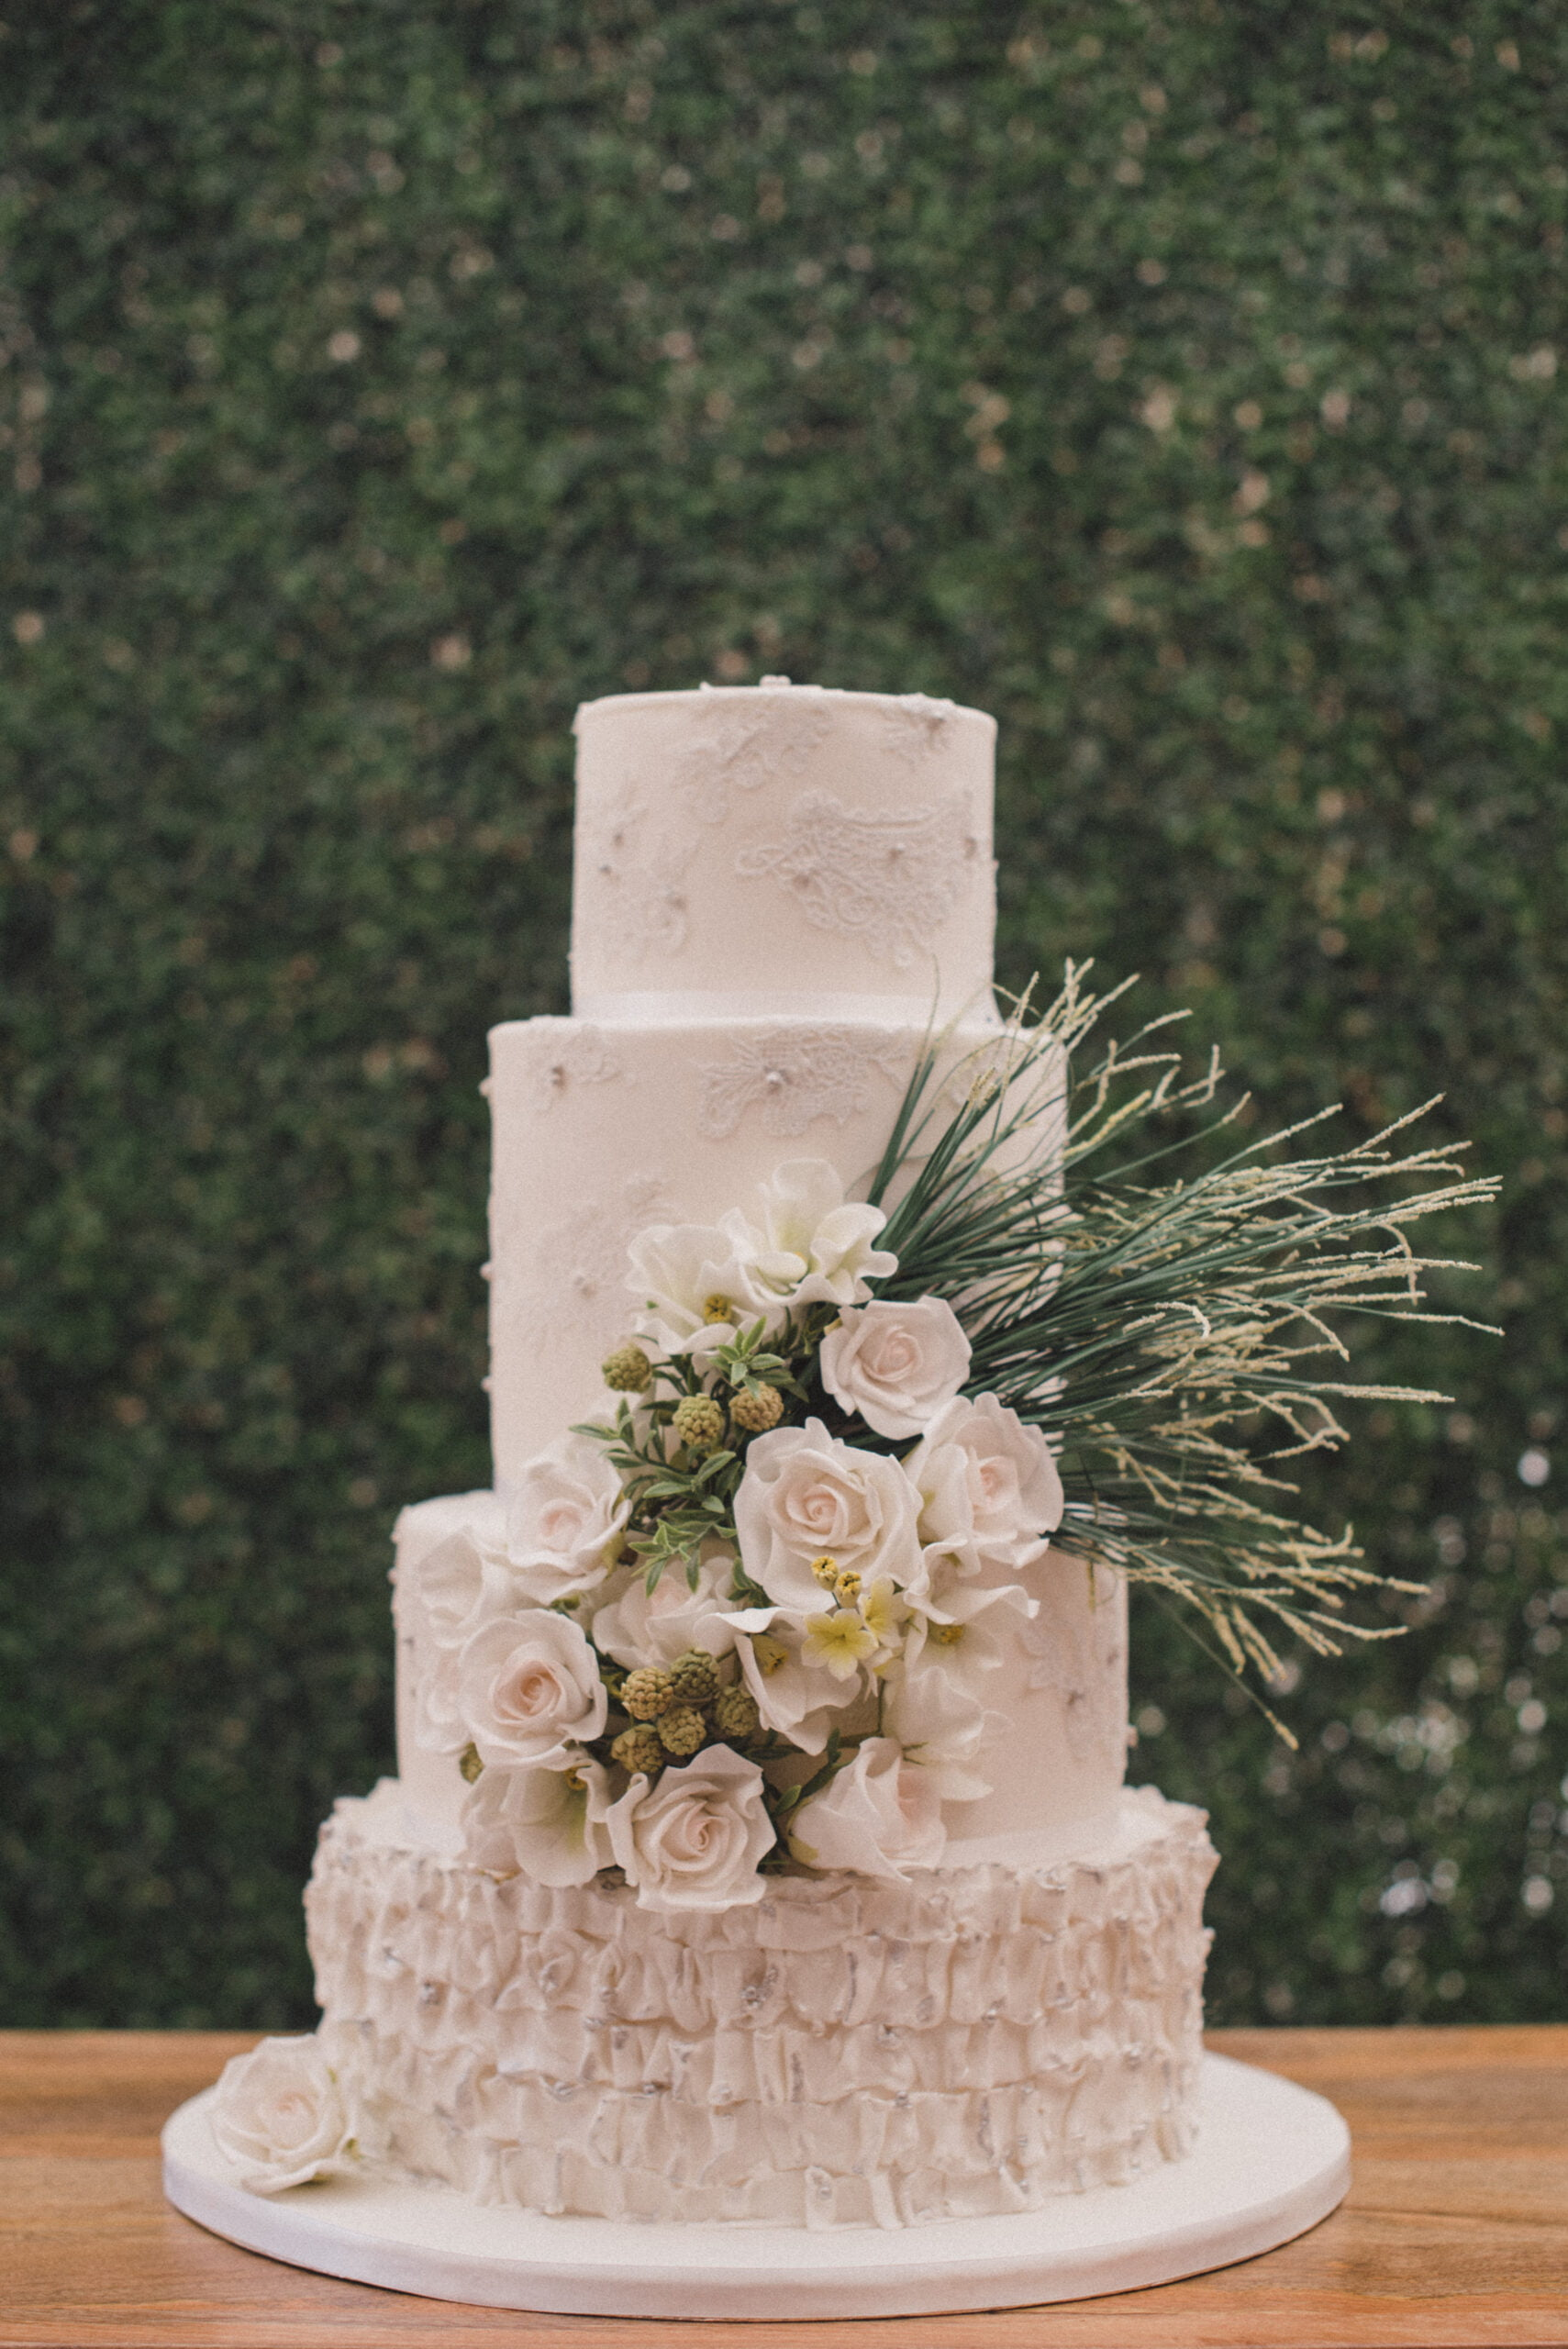 White wedding cake finished with delicate edible lace, handmade sugar ruffles and handmade white sugar roses designed by Bluebell Kitchen